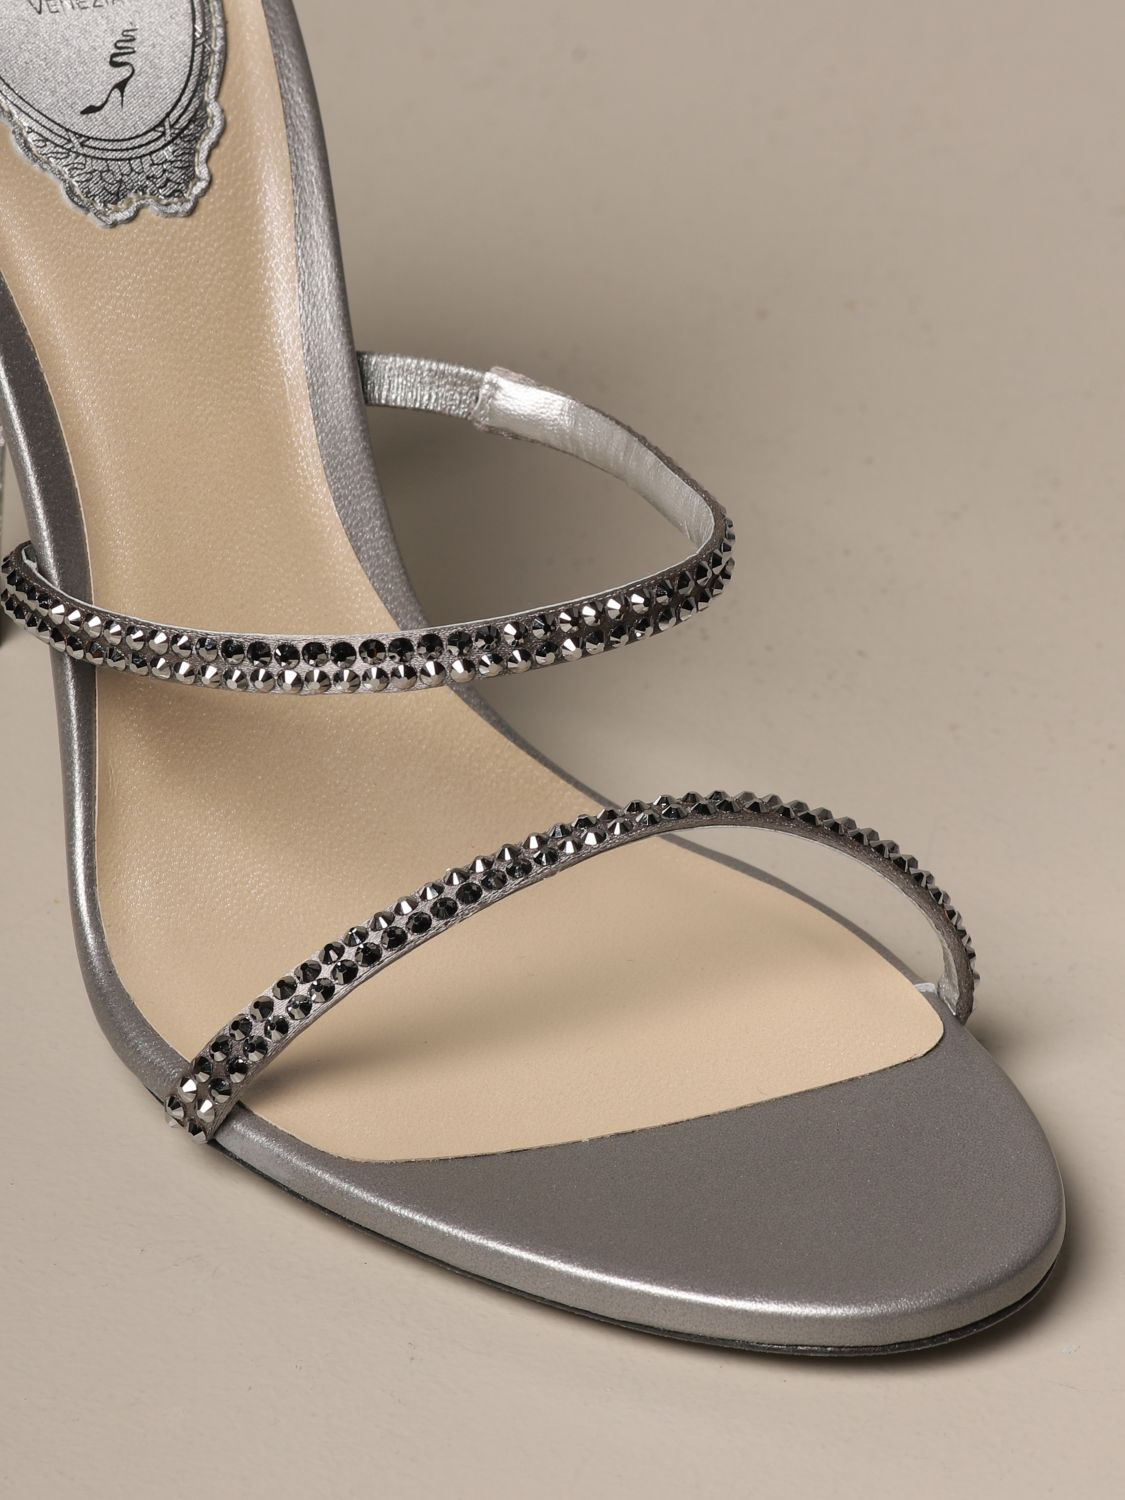 Heeled sandals Rene Caovilla: Cleo Snake René Caovilla sandal in satin with crystals silver 4